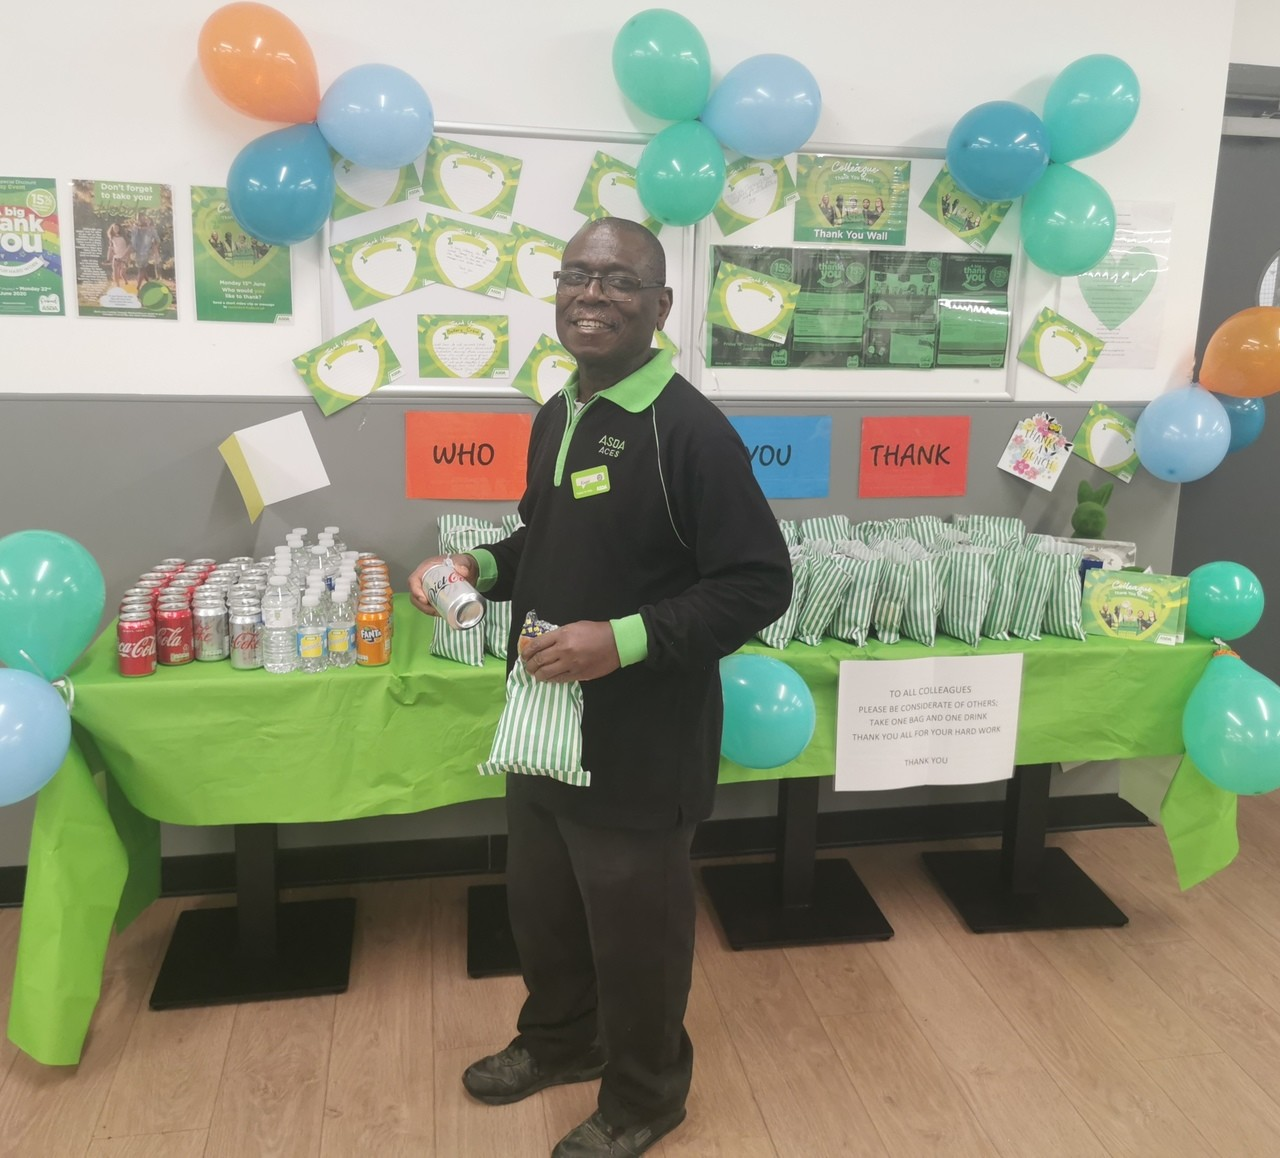 Big thank you to all our amazing colleagues | Asda Crawley